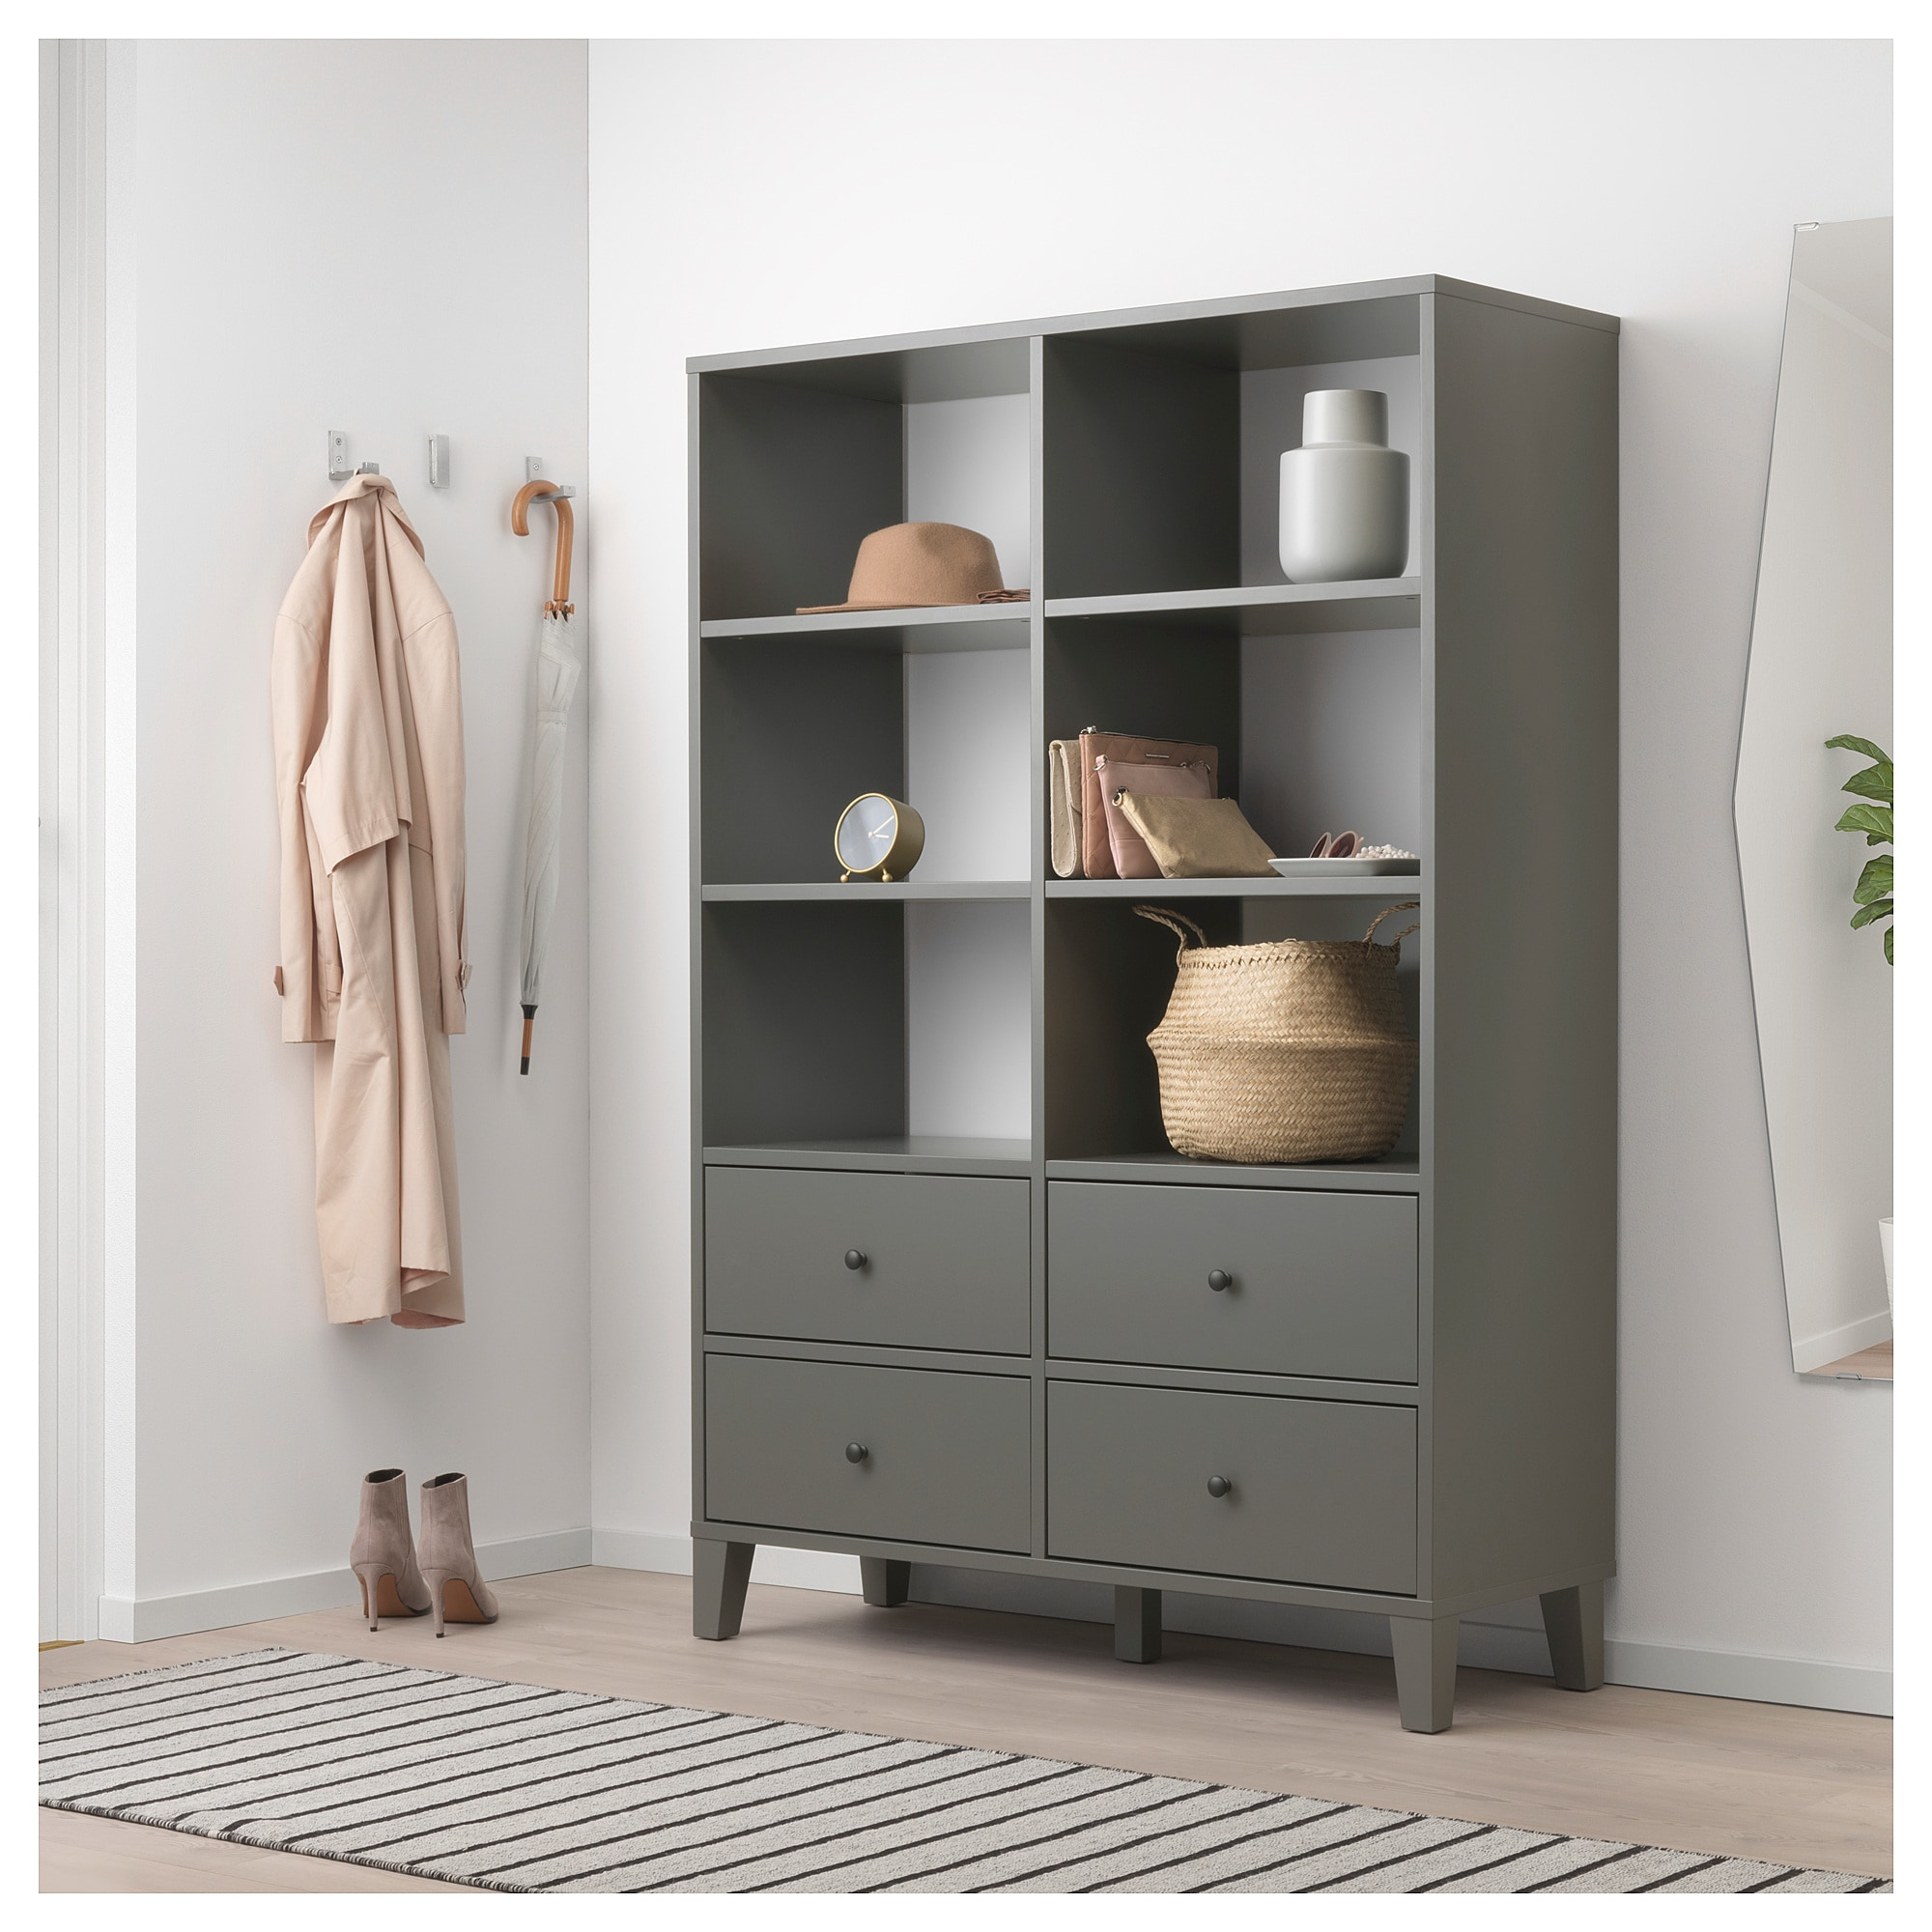 Bryggja Storage Unit Dark Gray 47 1